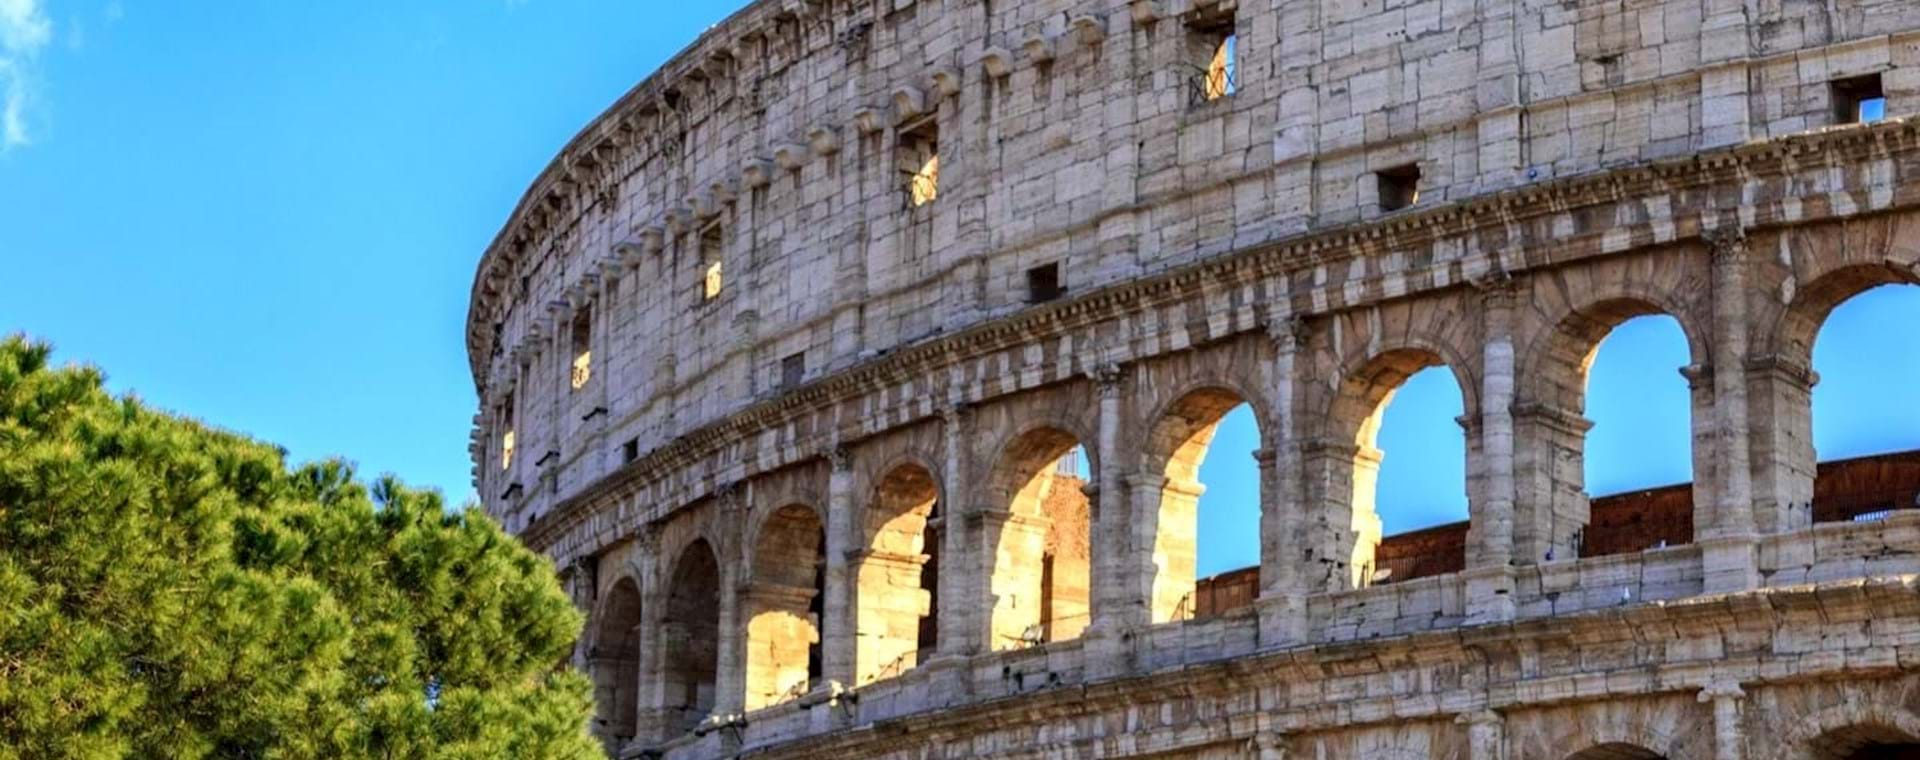 Colosseum Tickets Only with Escorted Access